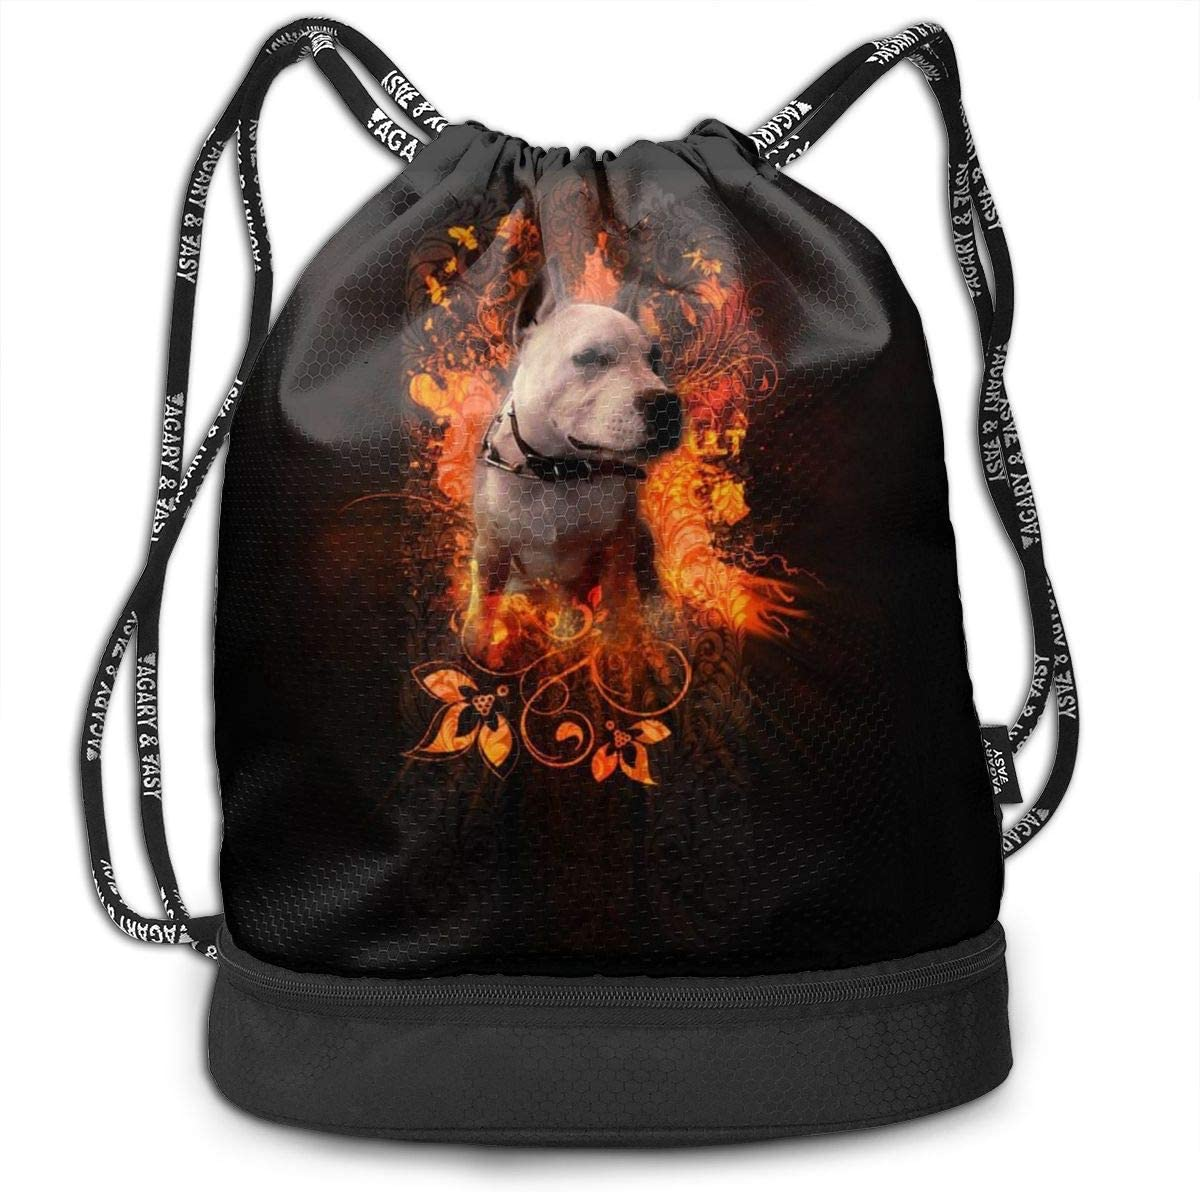 GymSack Drawstring Bag Sackpack Honey Dog Sport Cinch Pack Simple Bundle Pocke Backpack For Men Women